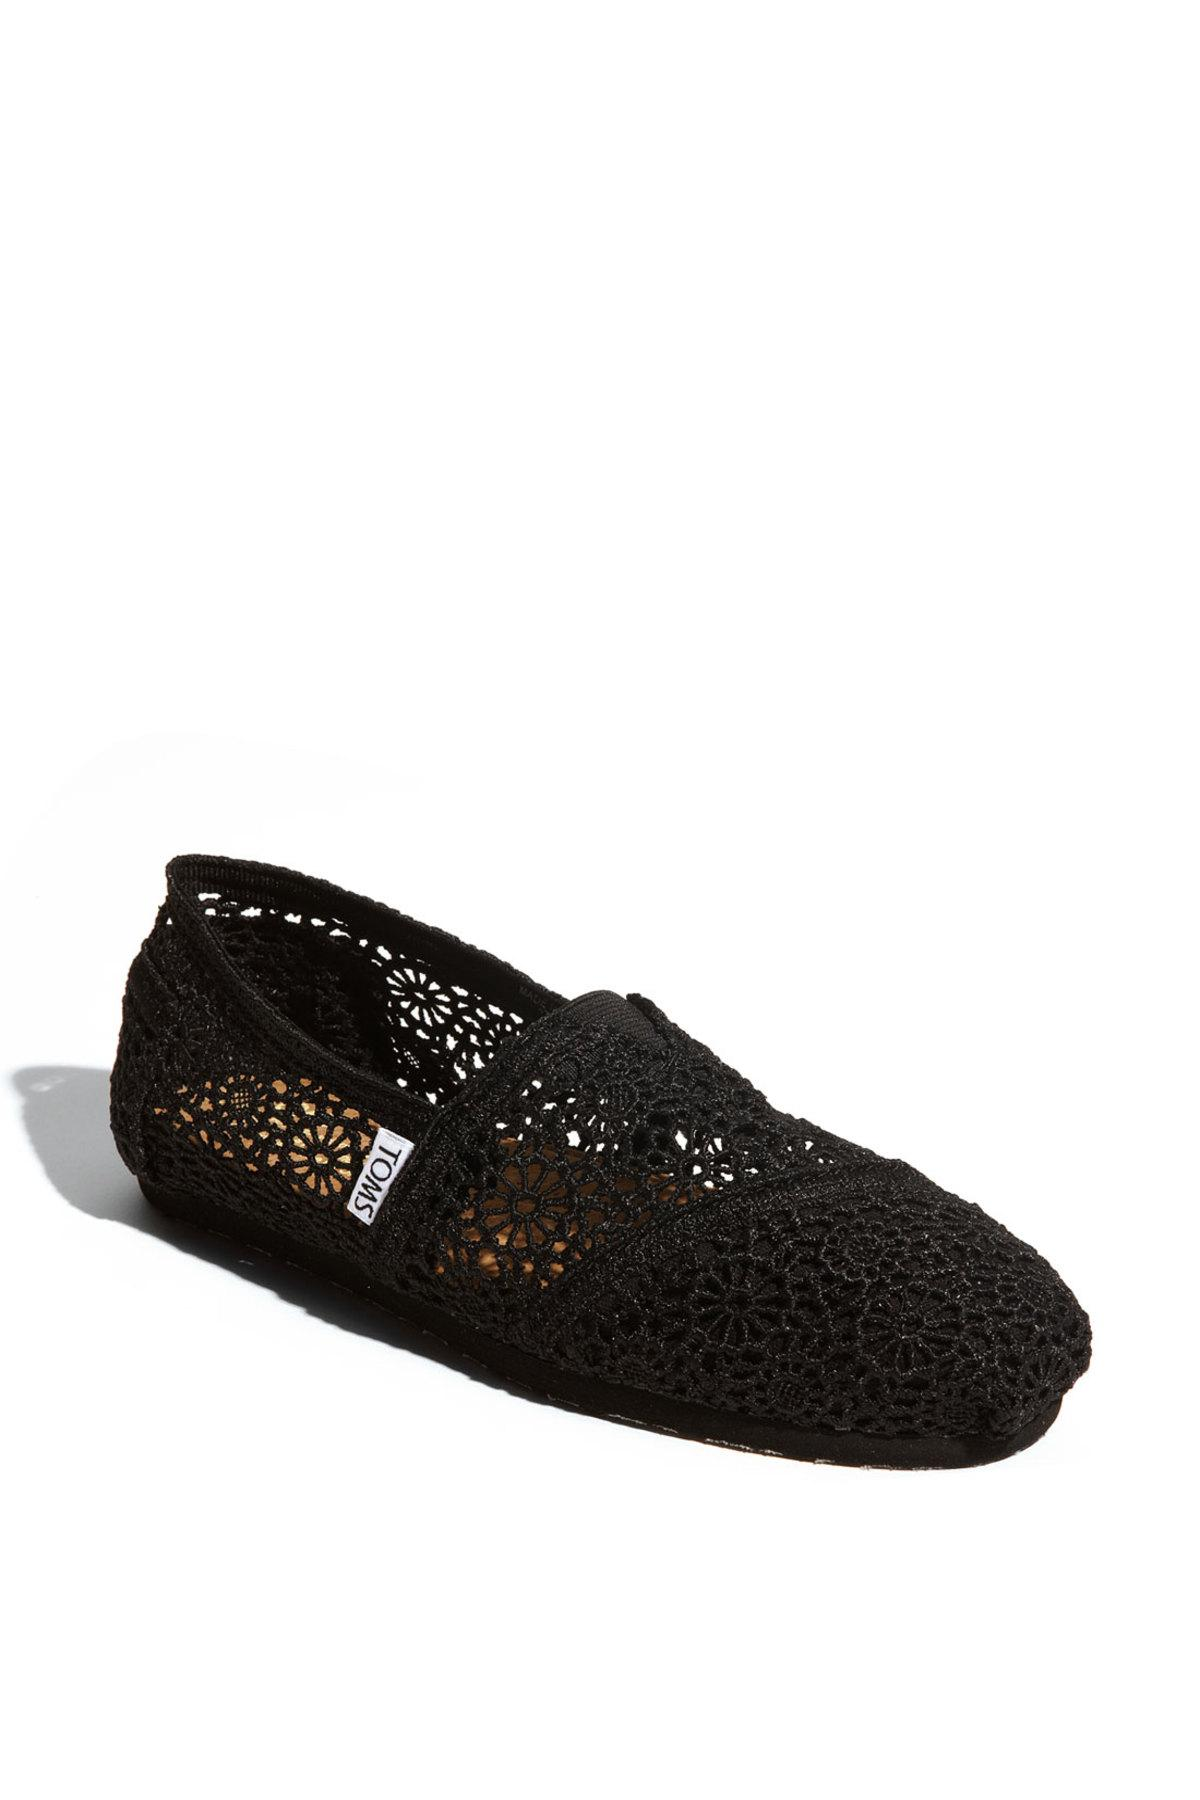 Toms Shoes Sale Nordstrom